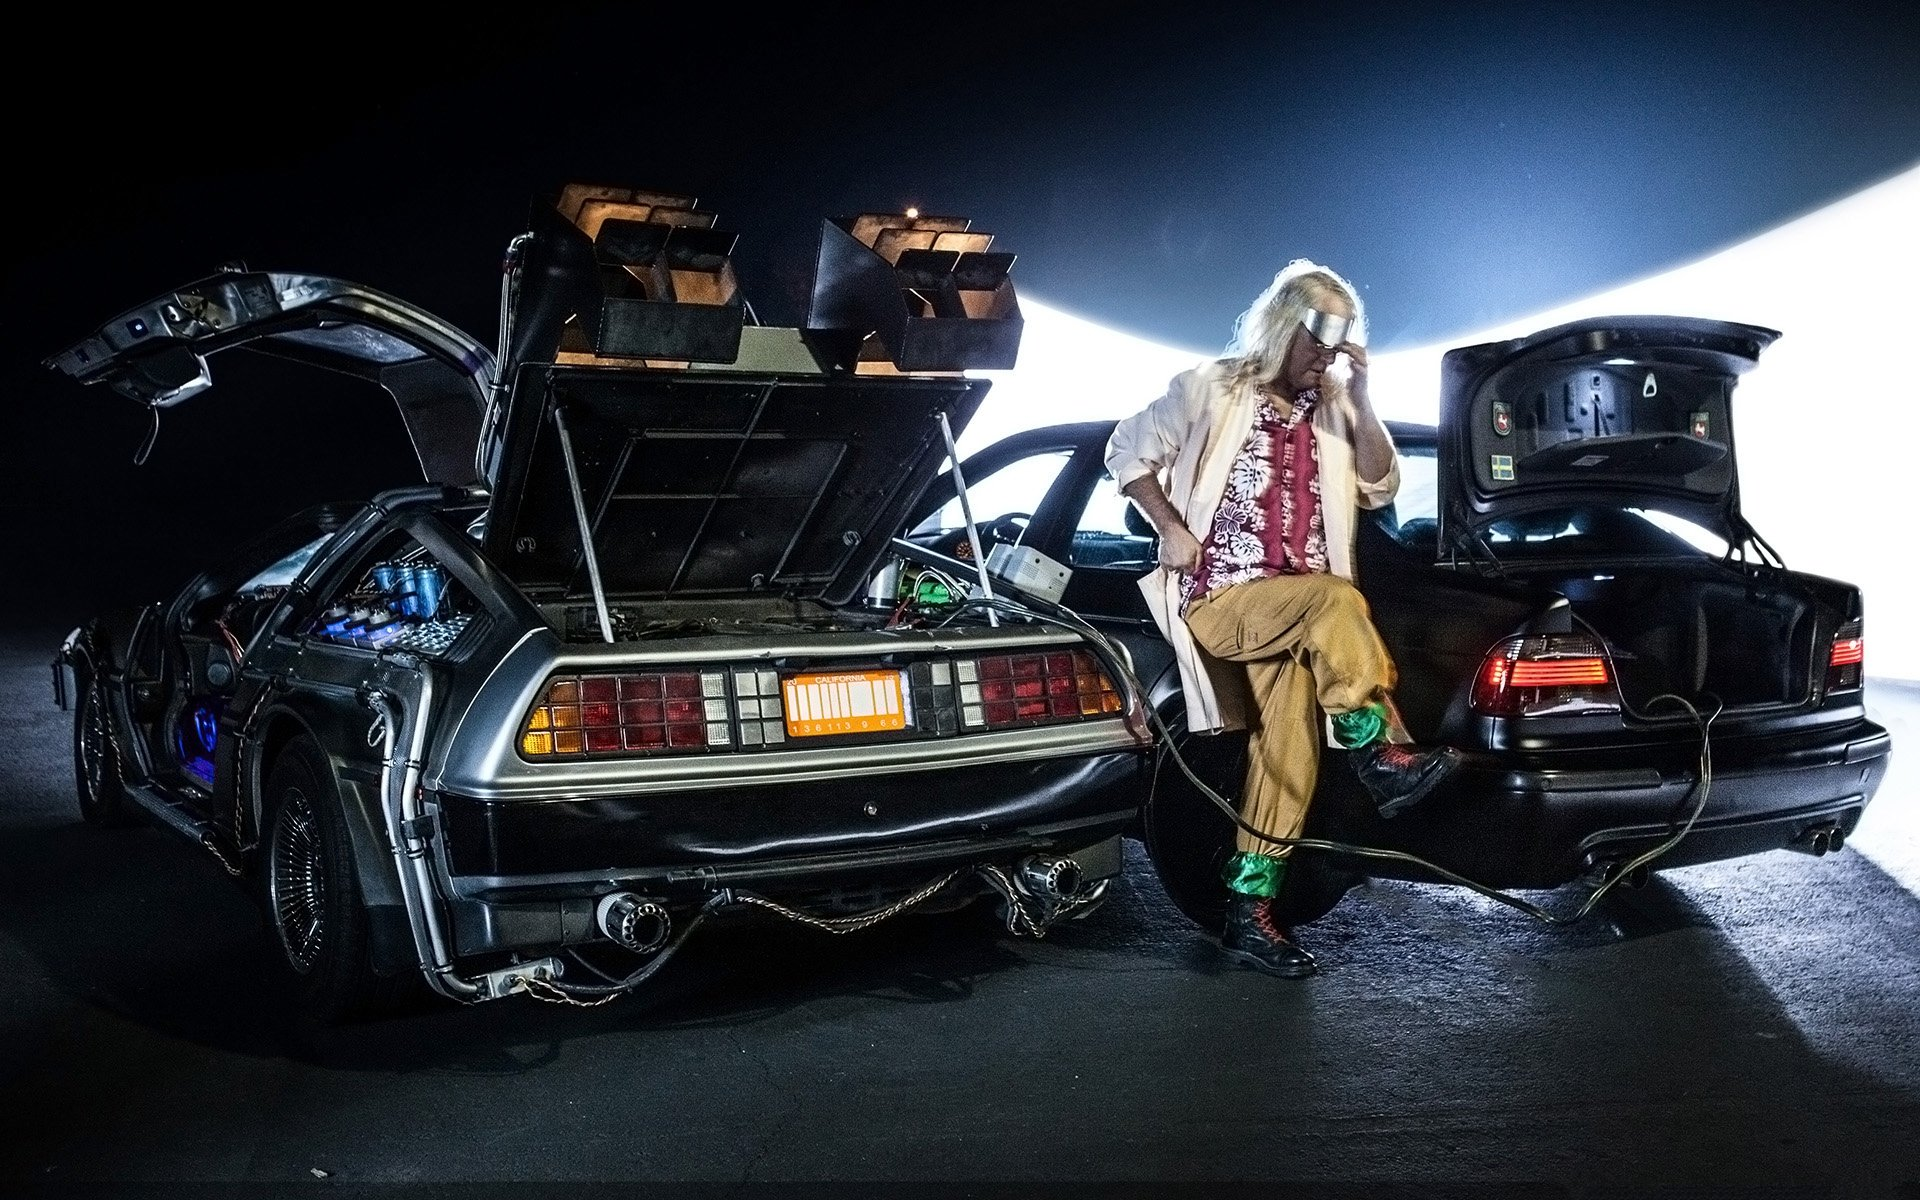 Delorean Wallpapers and Background Images   stmednet 1920x1200